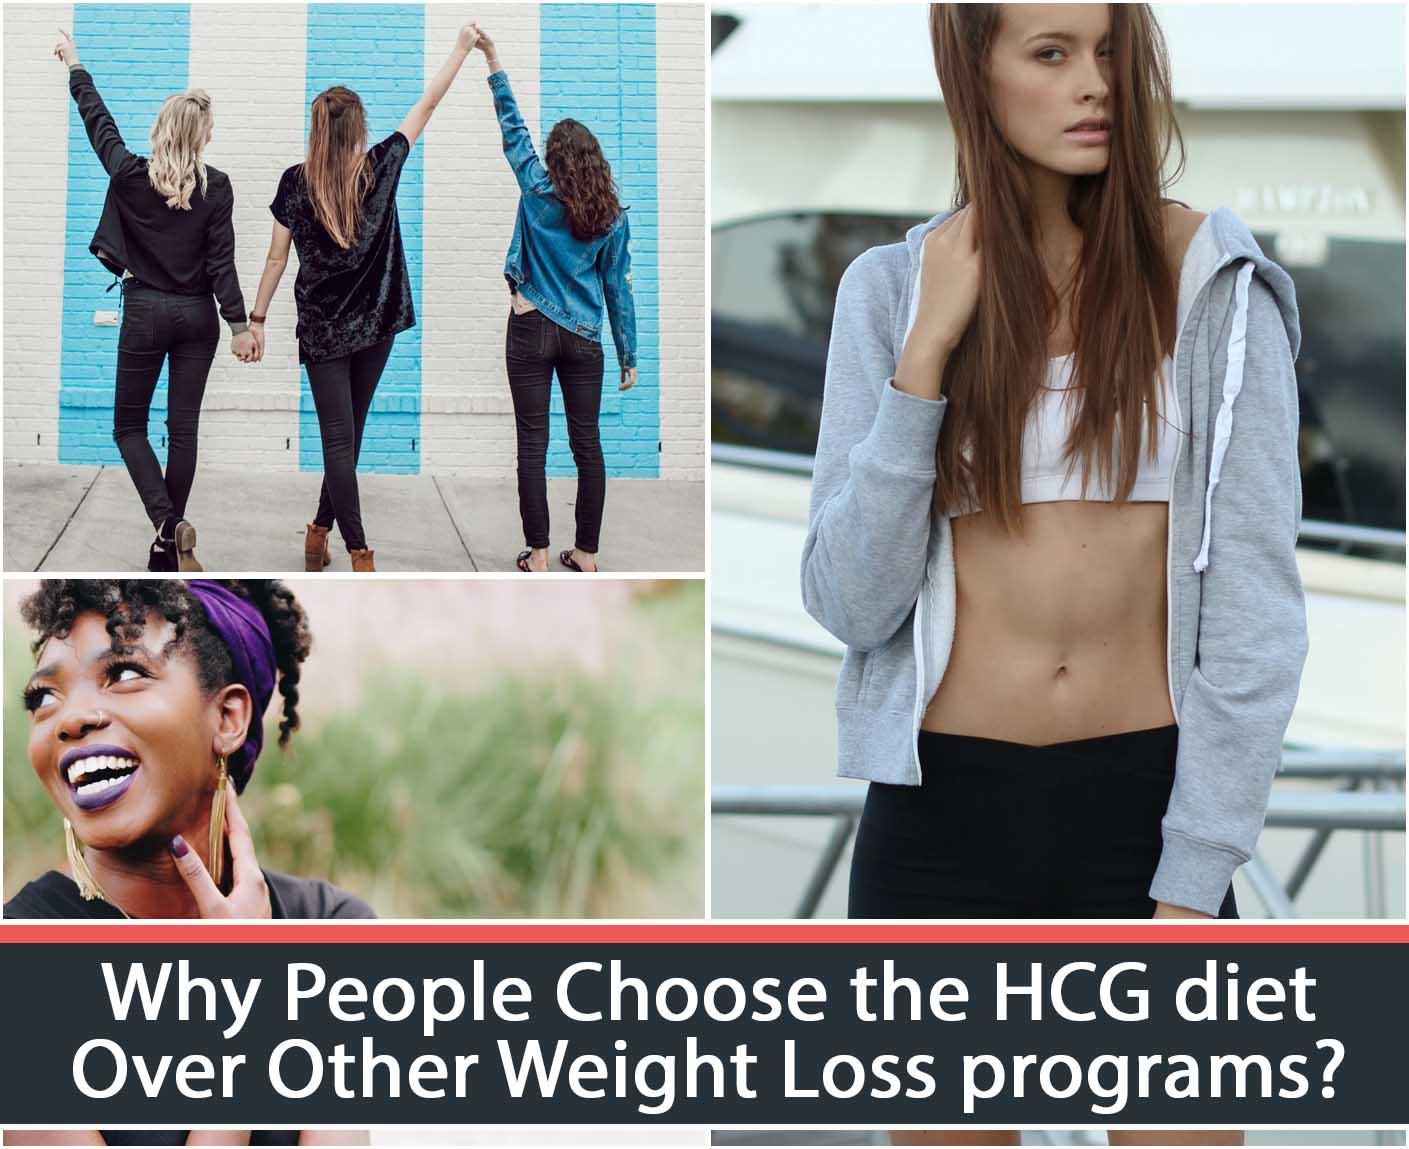 Why People Choose the HCG diet Over Other Weight Loss programs?